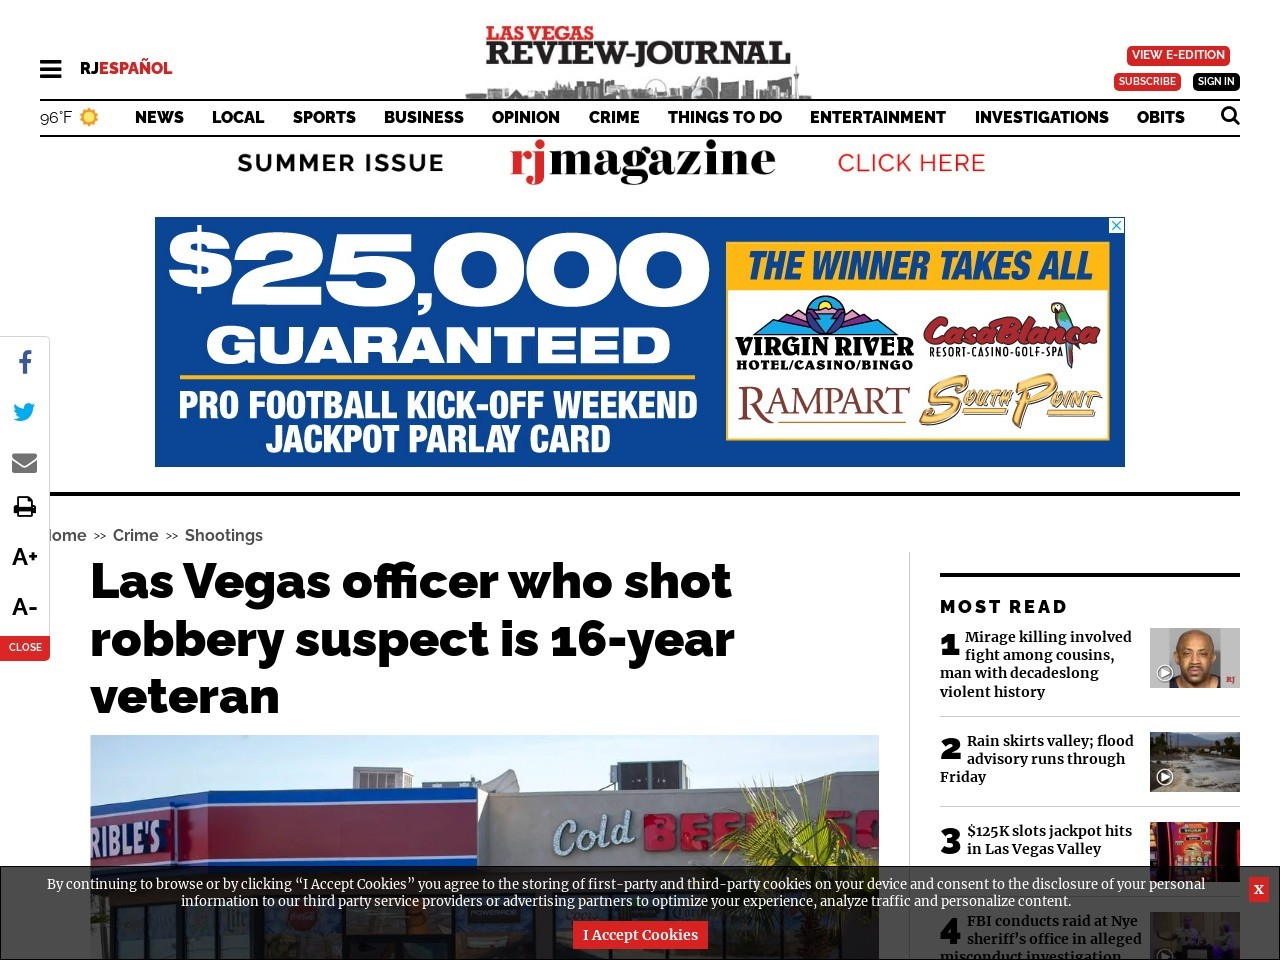 Las Vegas officer who shot robbery suspect is 16-year veteran